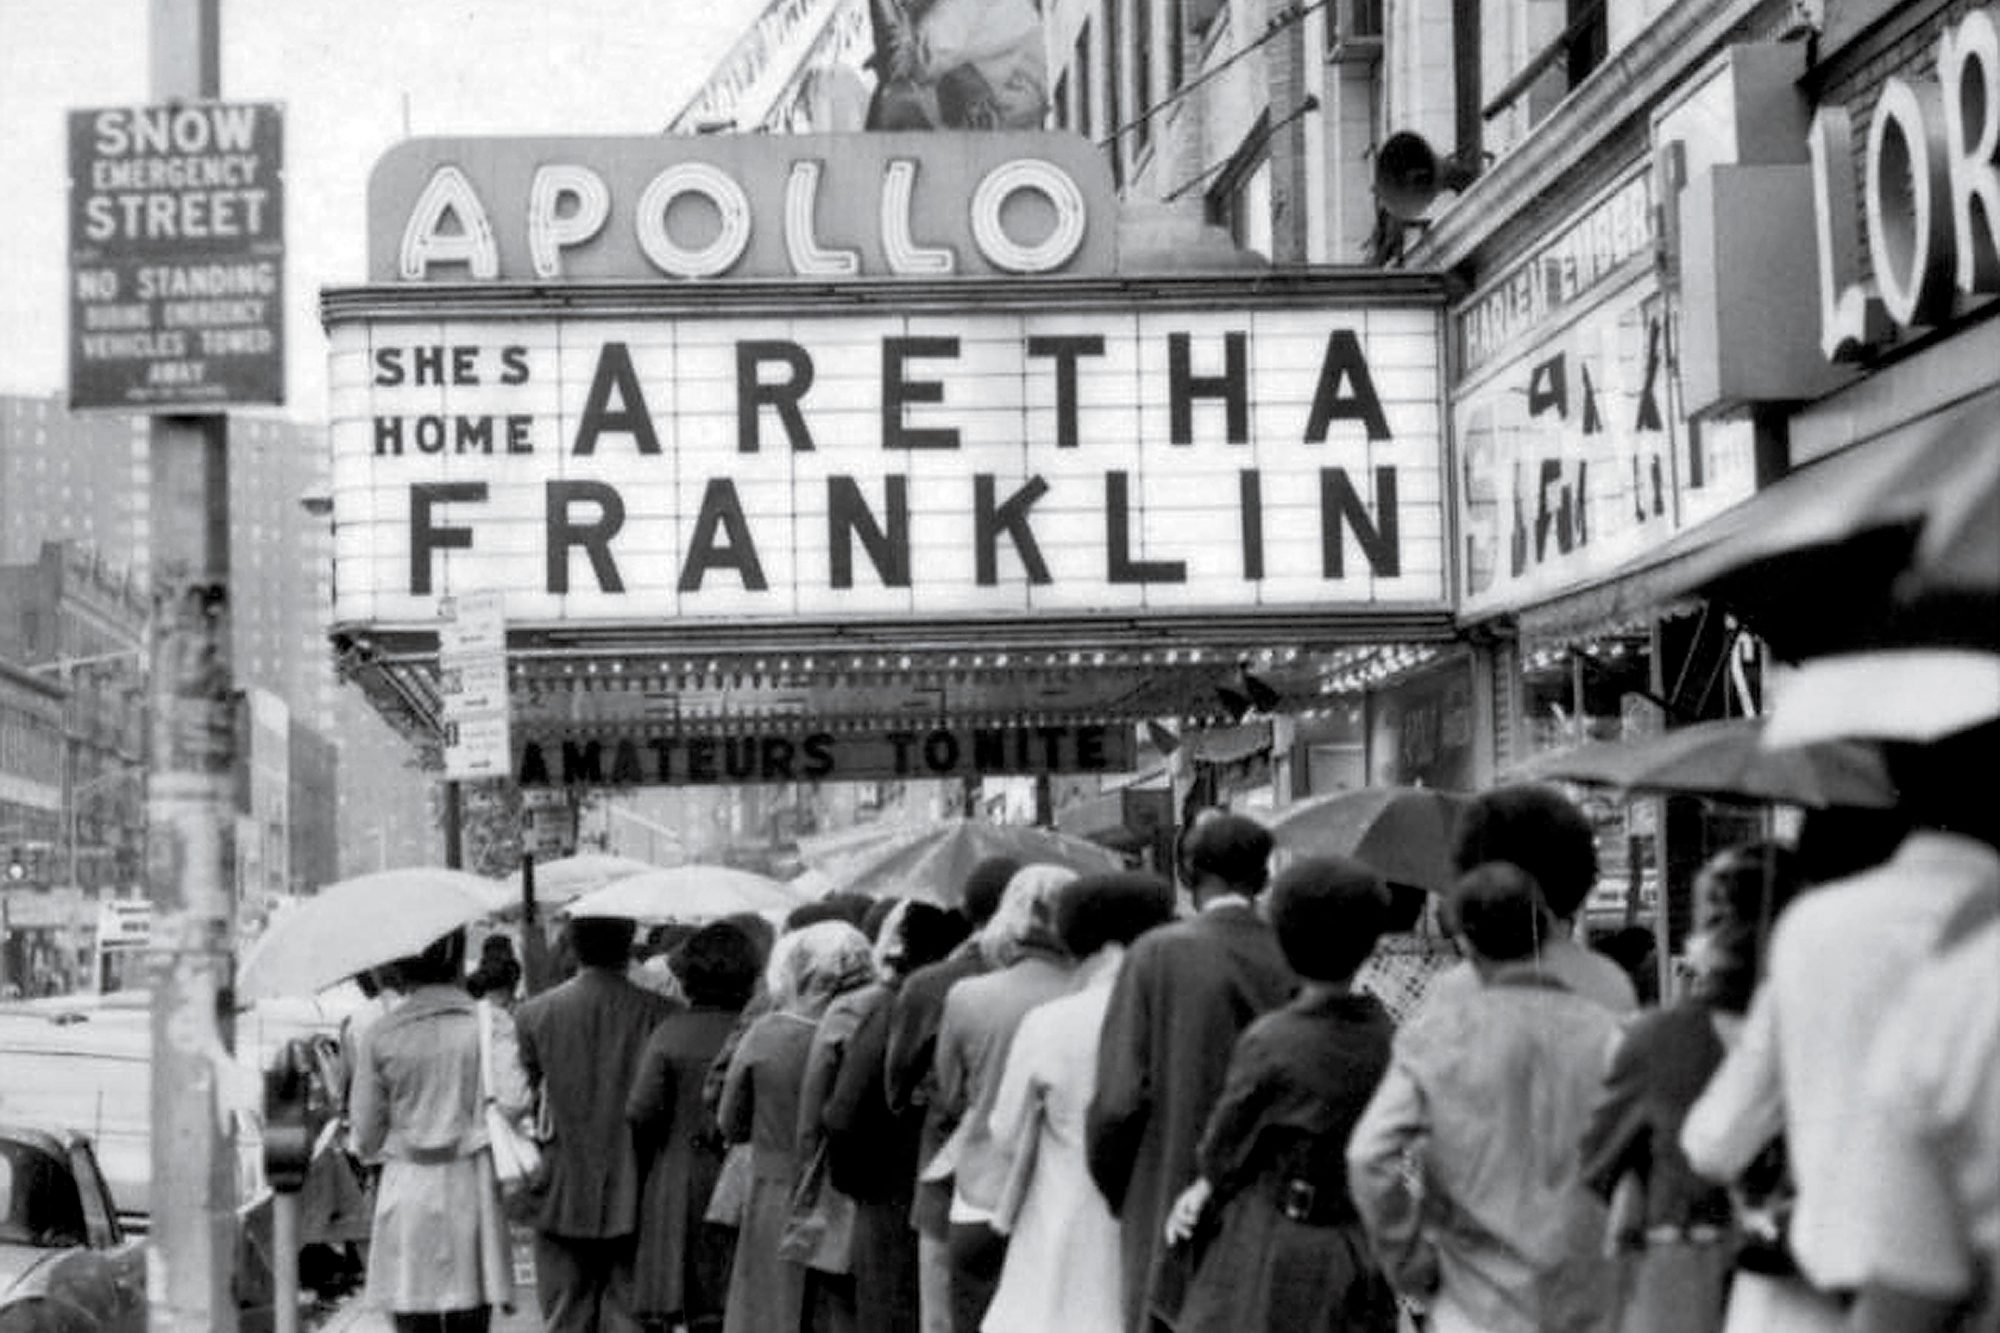 View of the Apollo Theater in New York in 1971